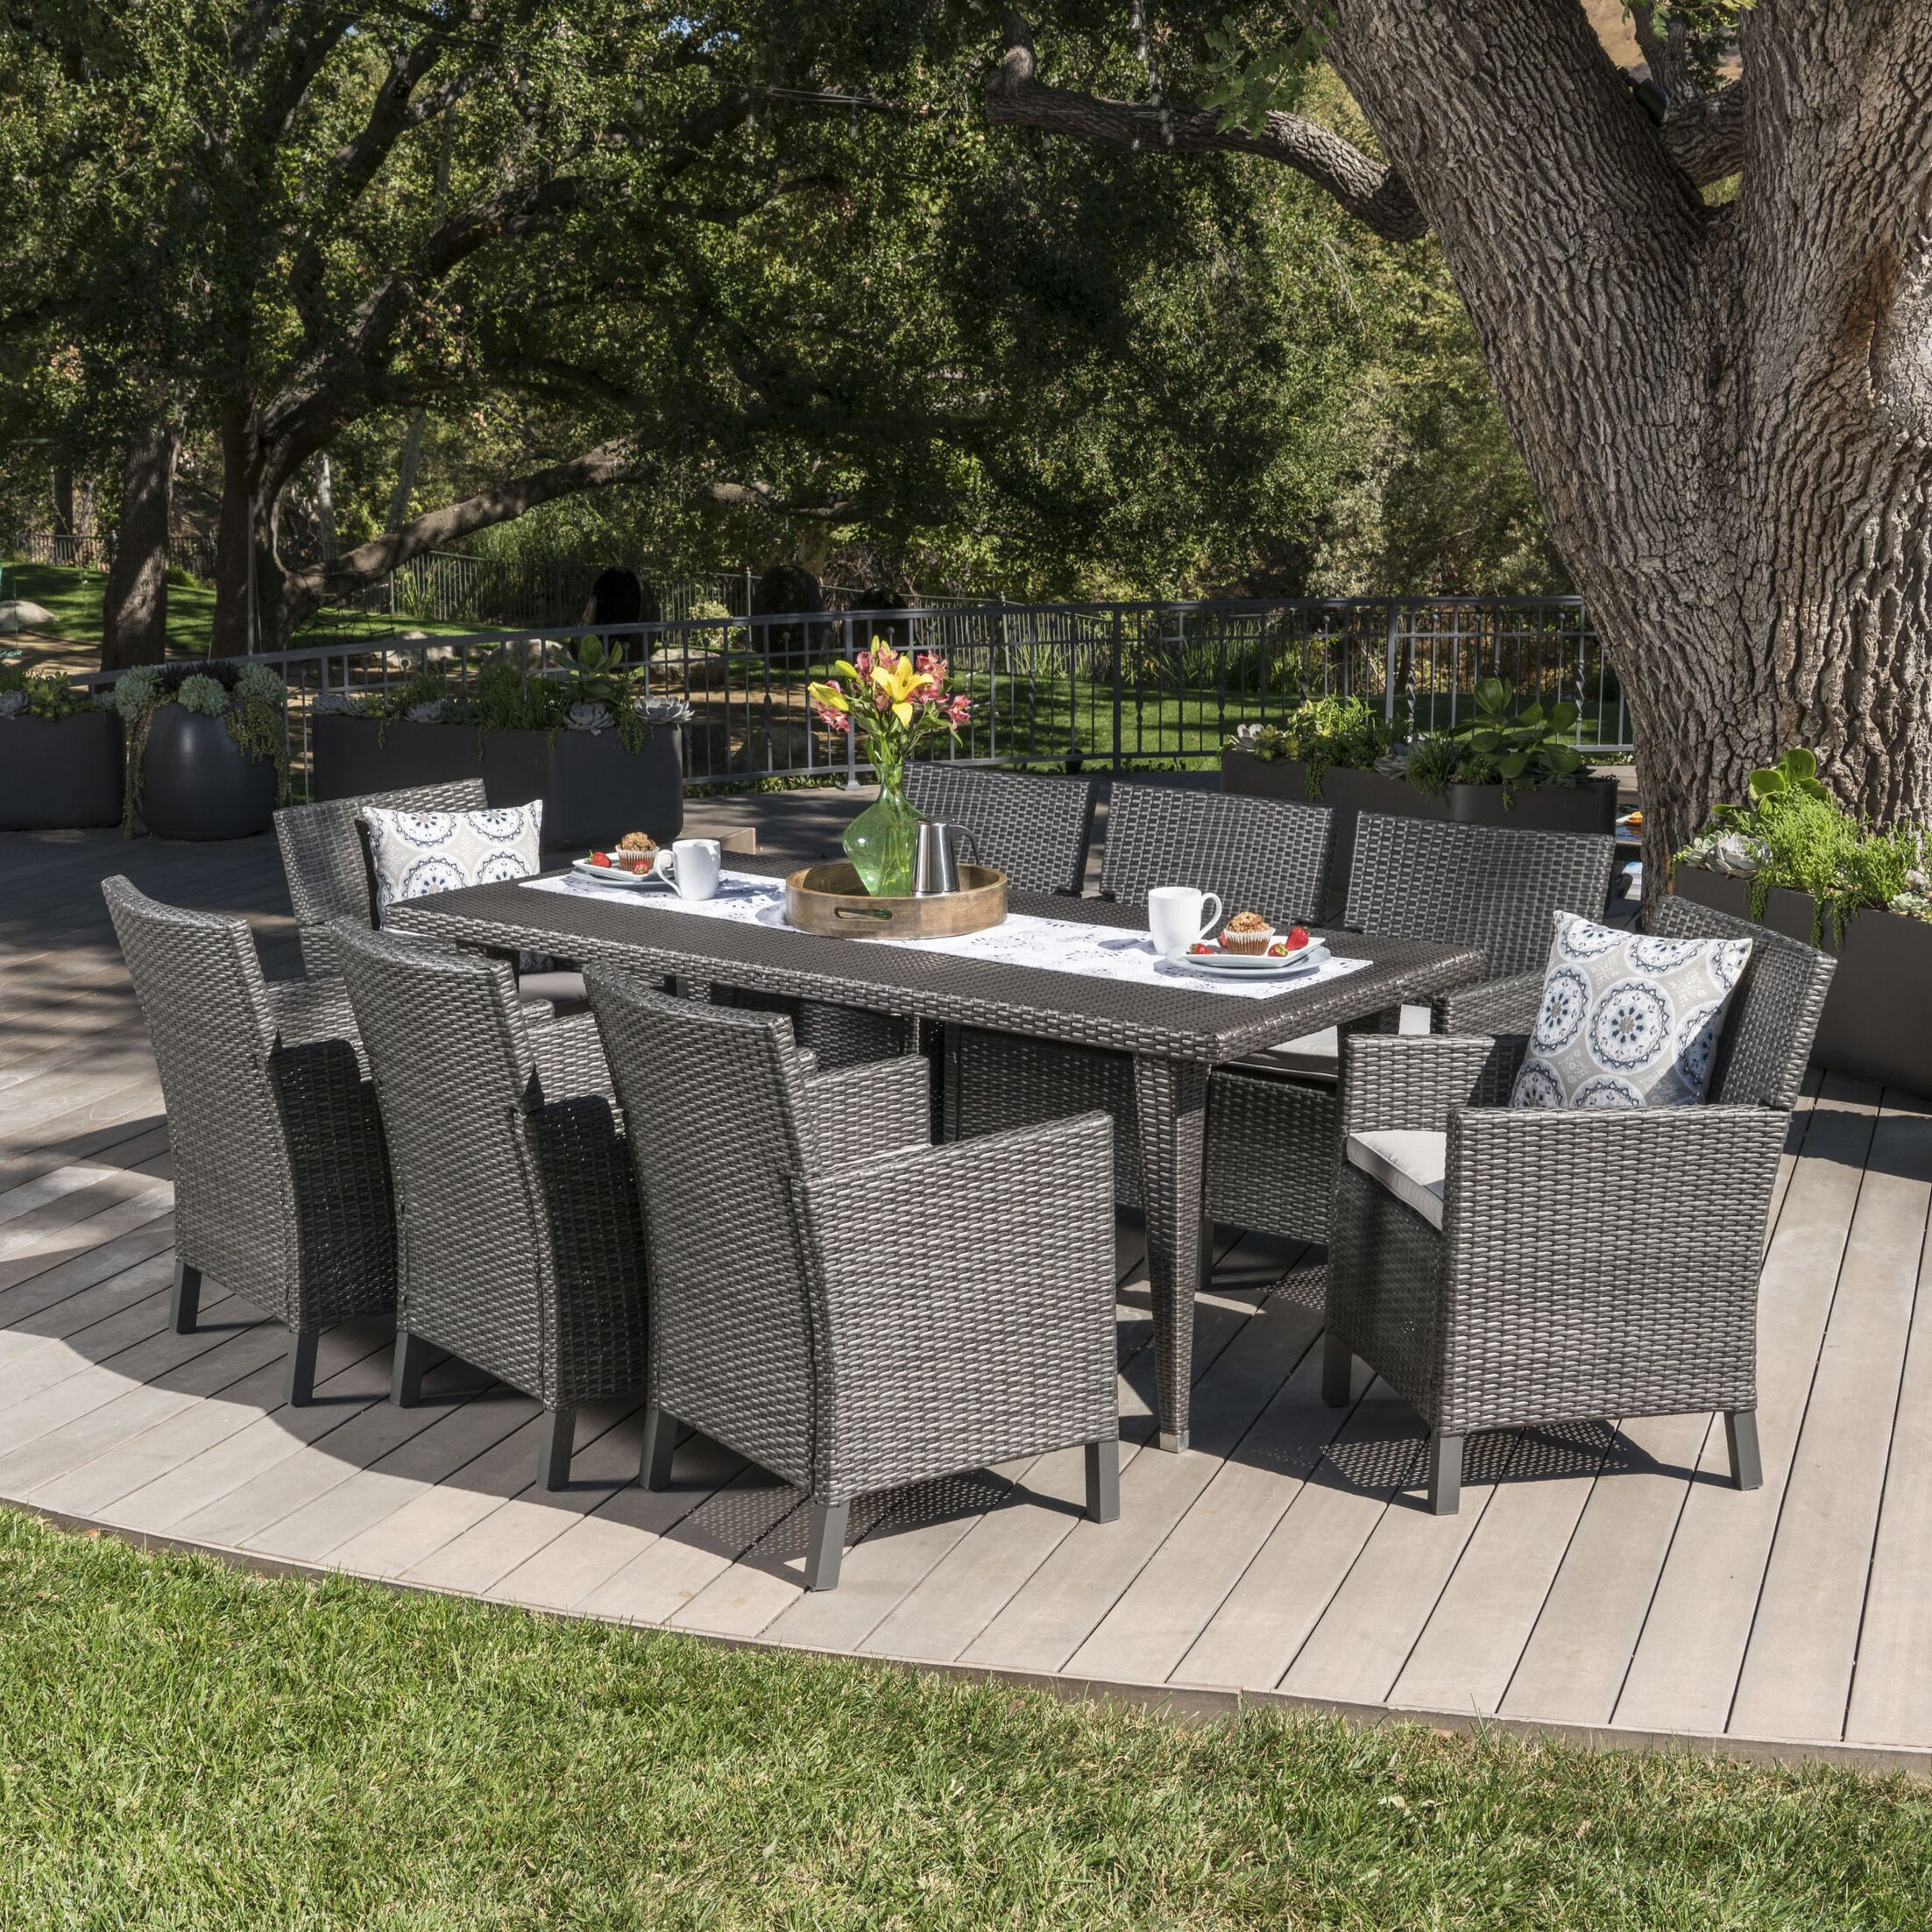 Luebke 9 Piece Dining Set with Cushions Color: Gray, Cushion Color: Light Gray